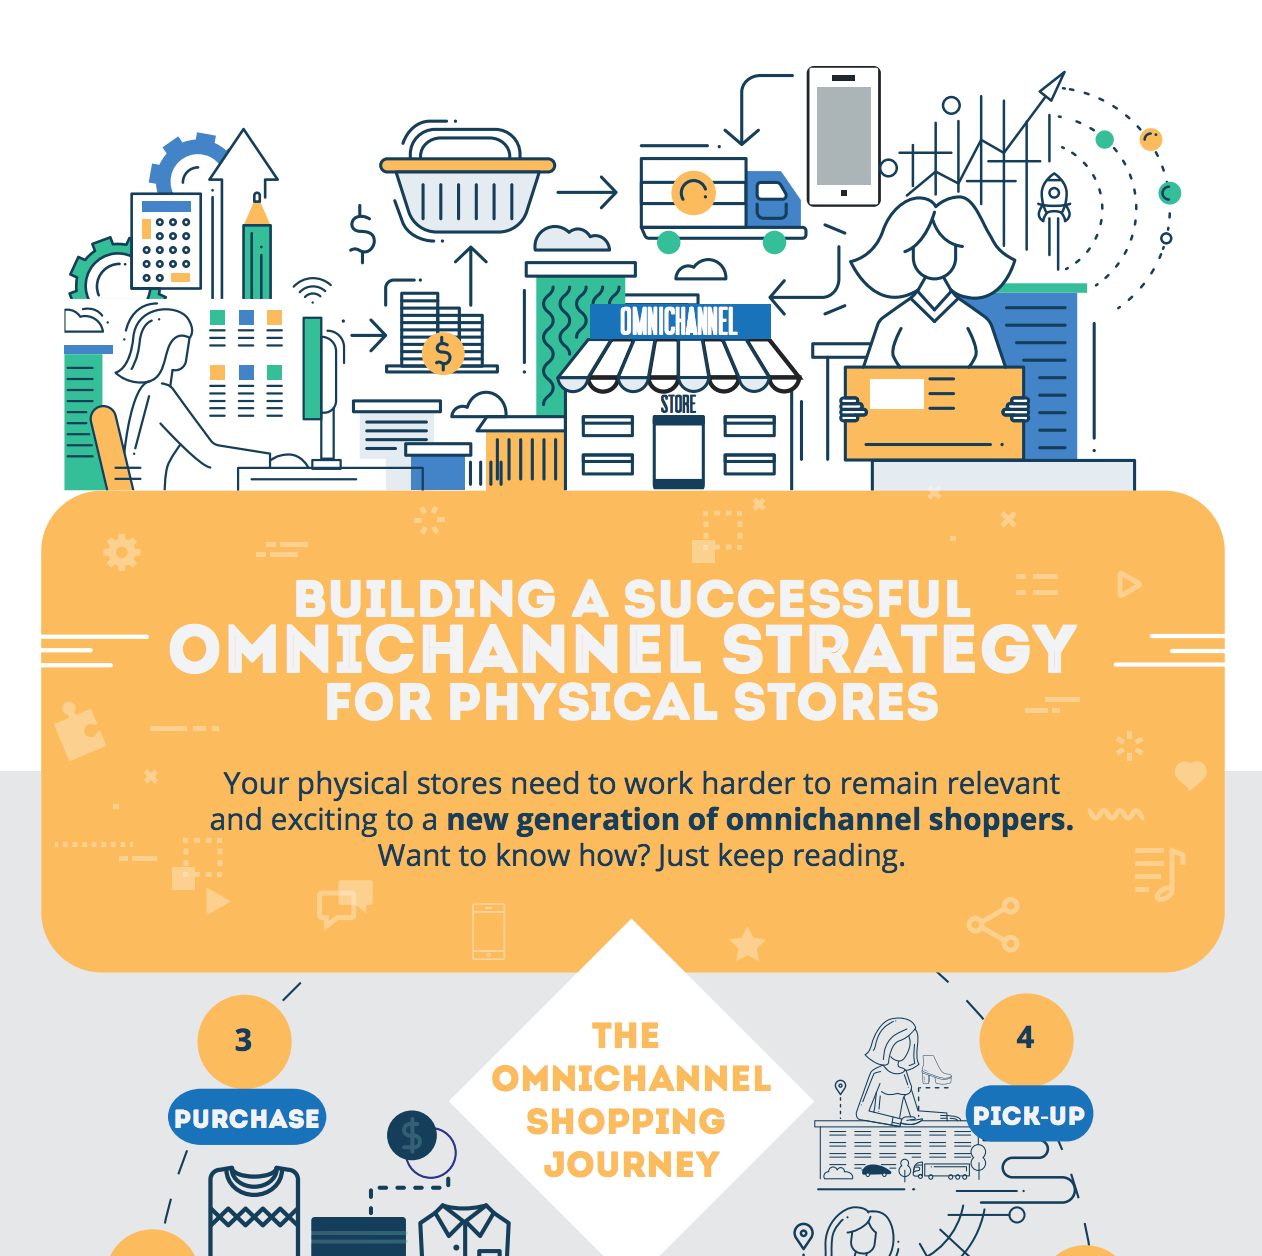 Infographic_Building successful omnichannel strategy for physical stores_EN.png